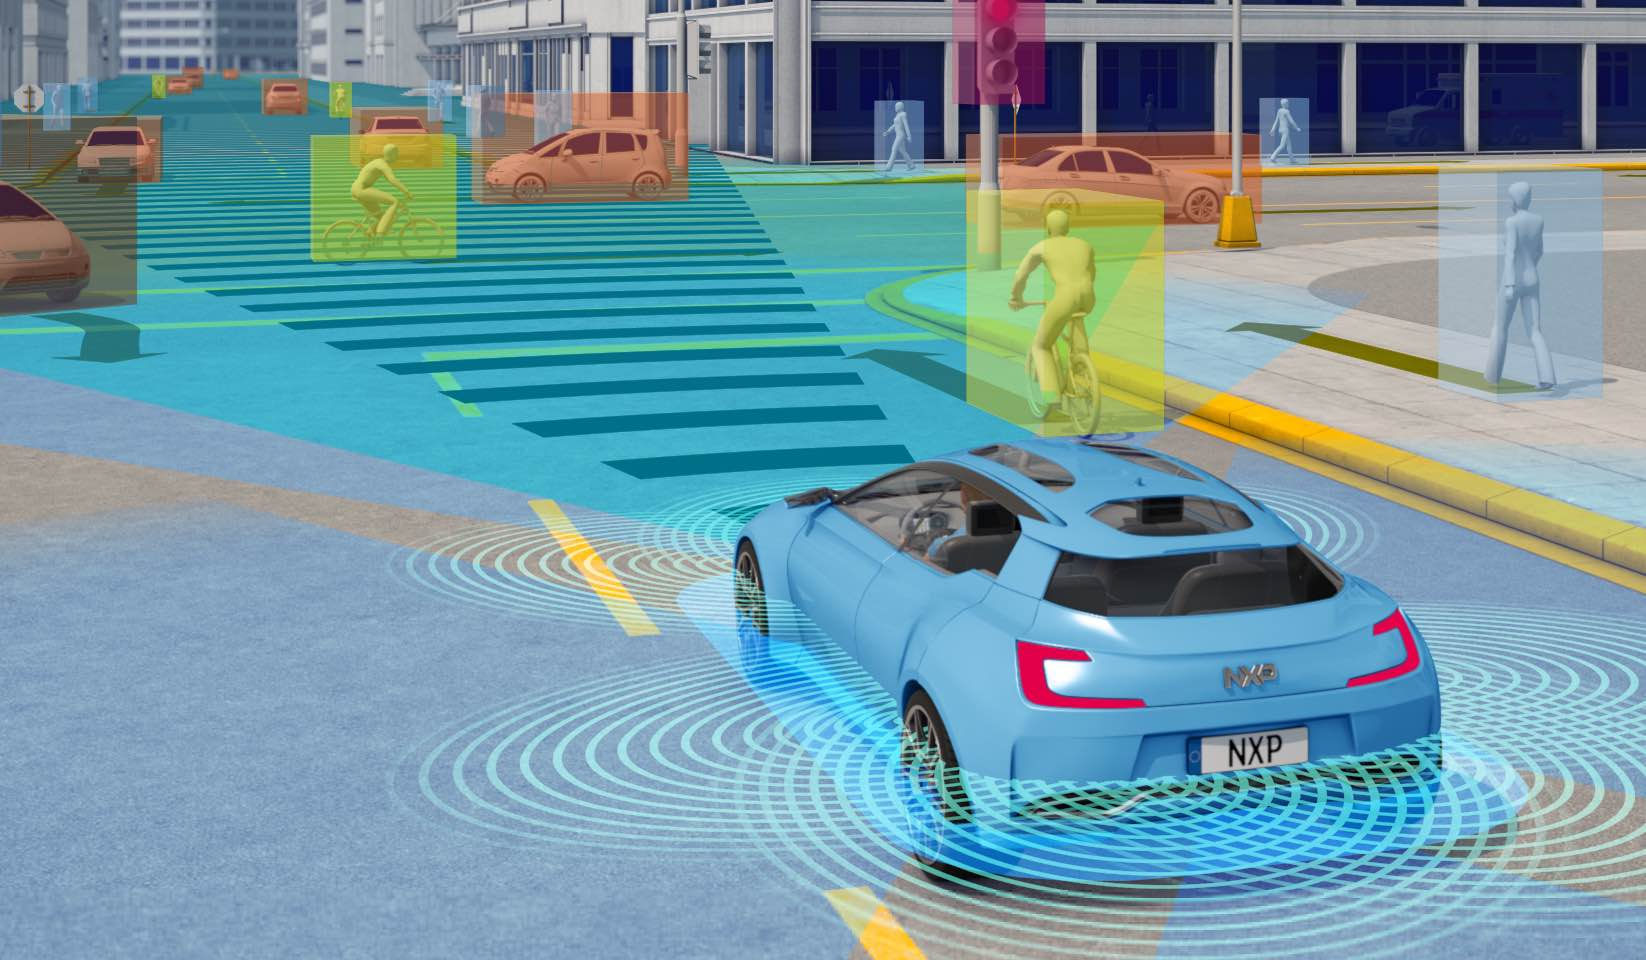 Ces Autonomous Cars And The Sensors To Make Them Safe